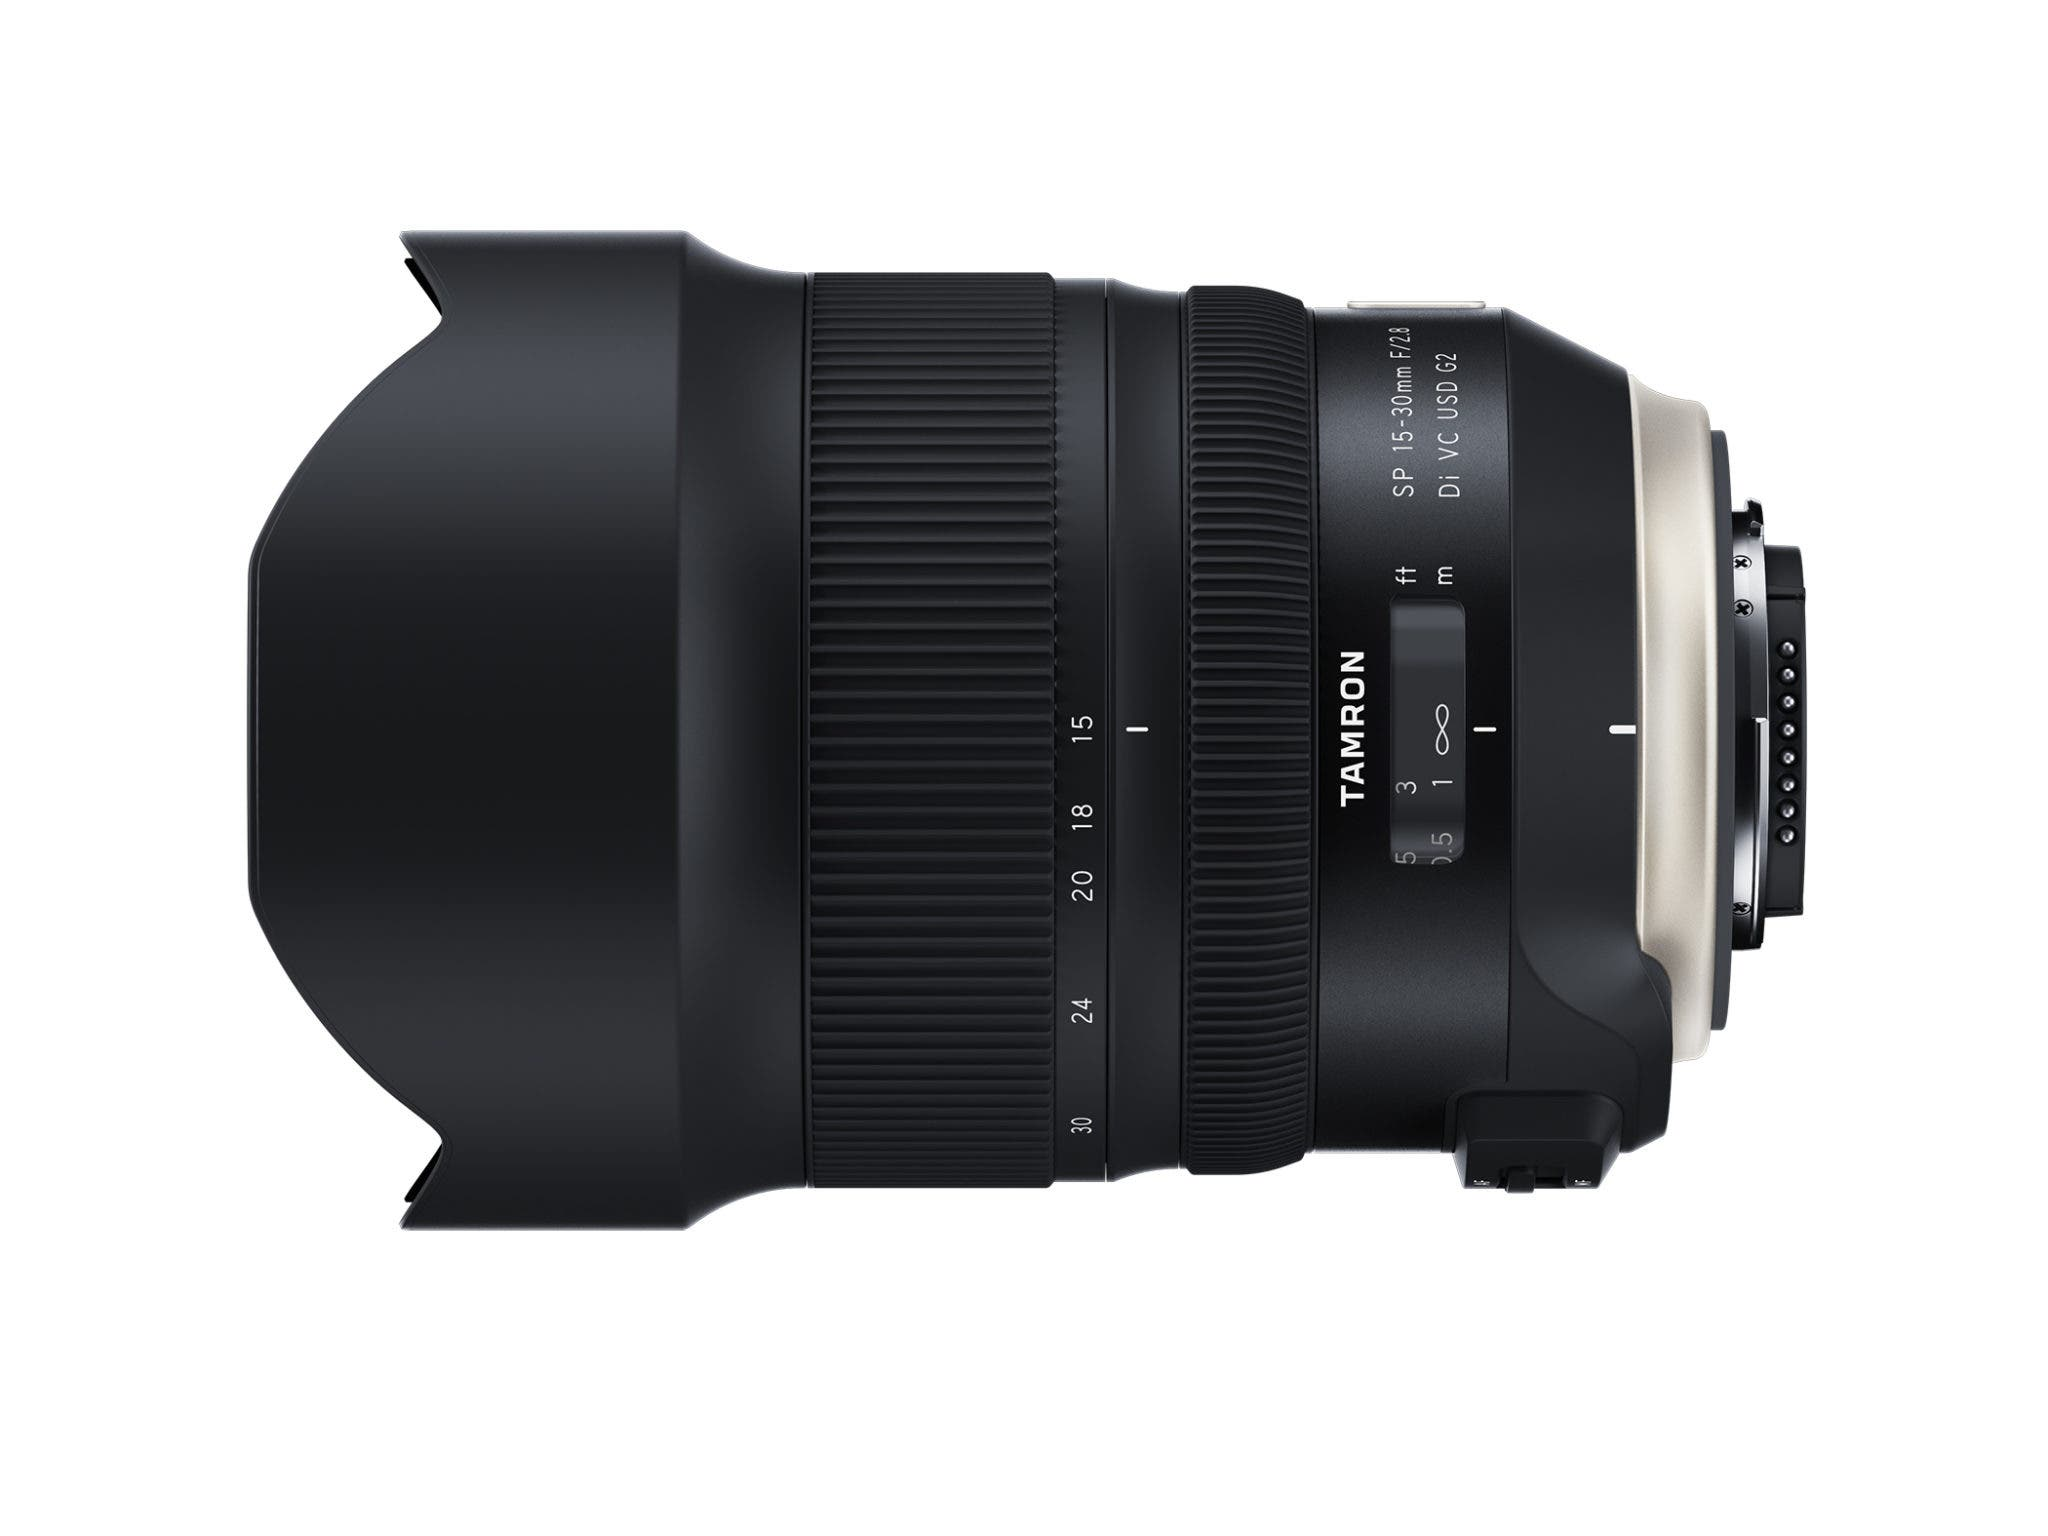 The Tamron SP 15-30mm F2.8 Di VC USD Covers Wide Angles for Full Frame DSLR Shooters